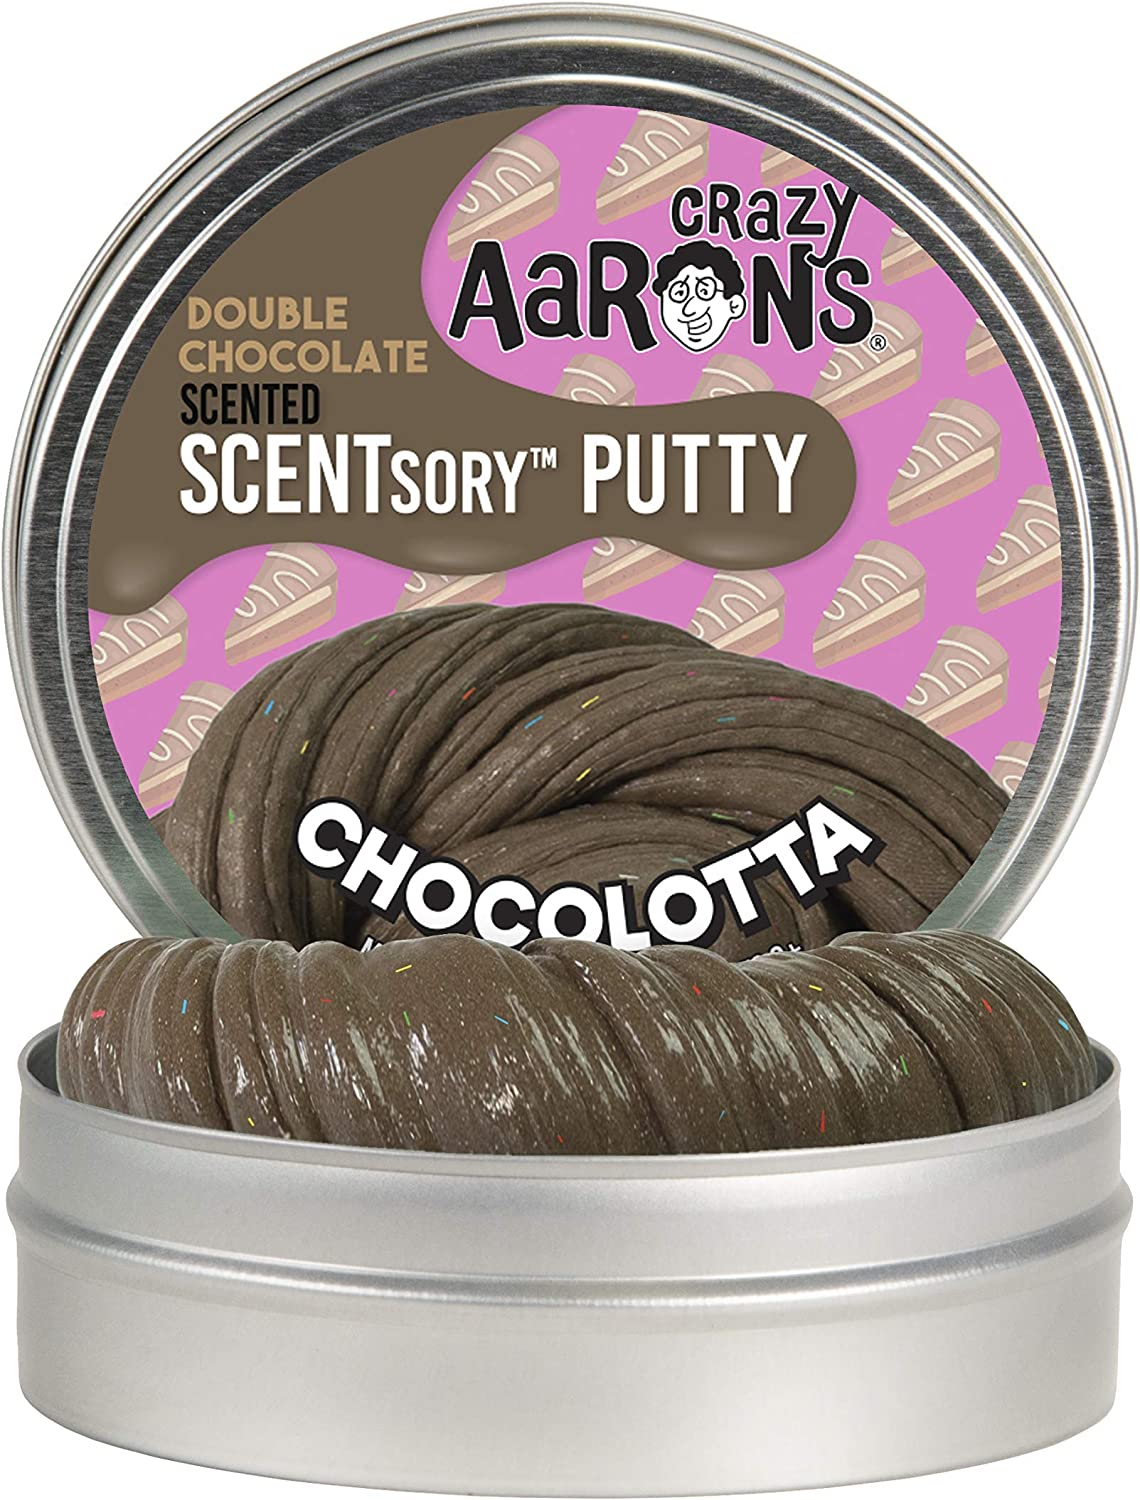 "Crazy Aaron's SCENTSory Thinking Putty - Chocolatta 2.75"" Tin - Double Chocolate Scented"